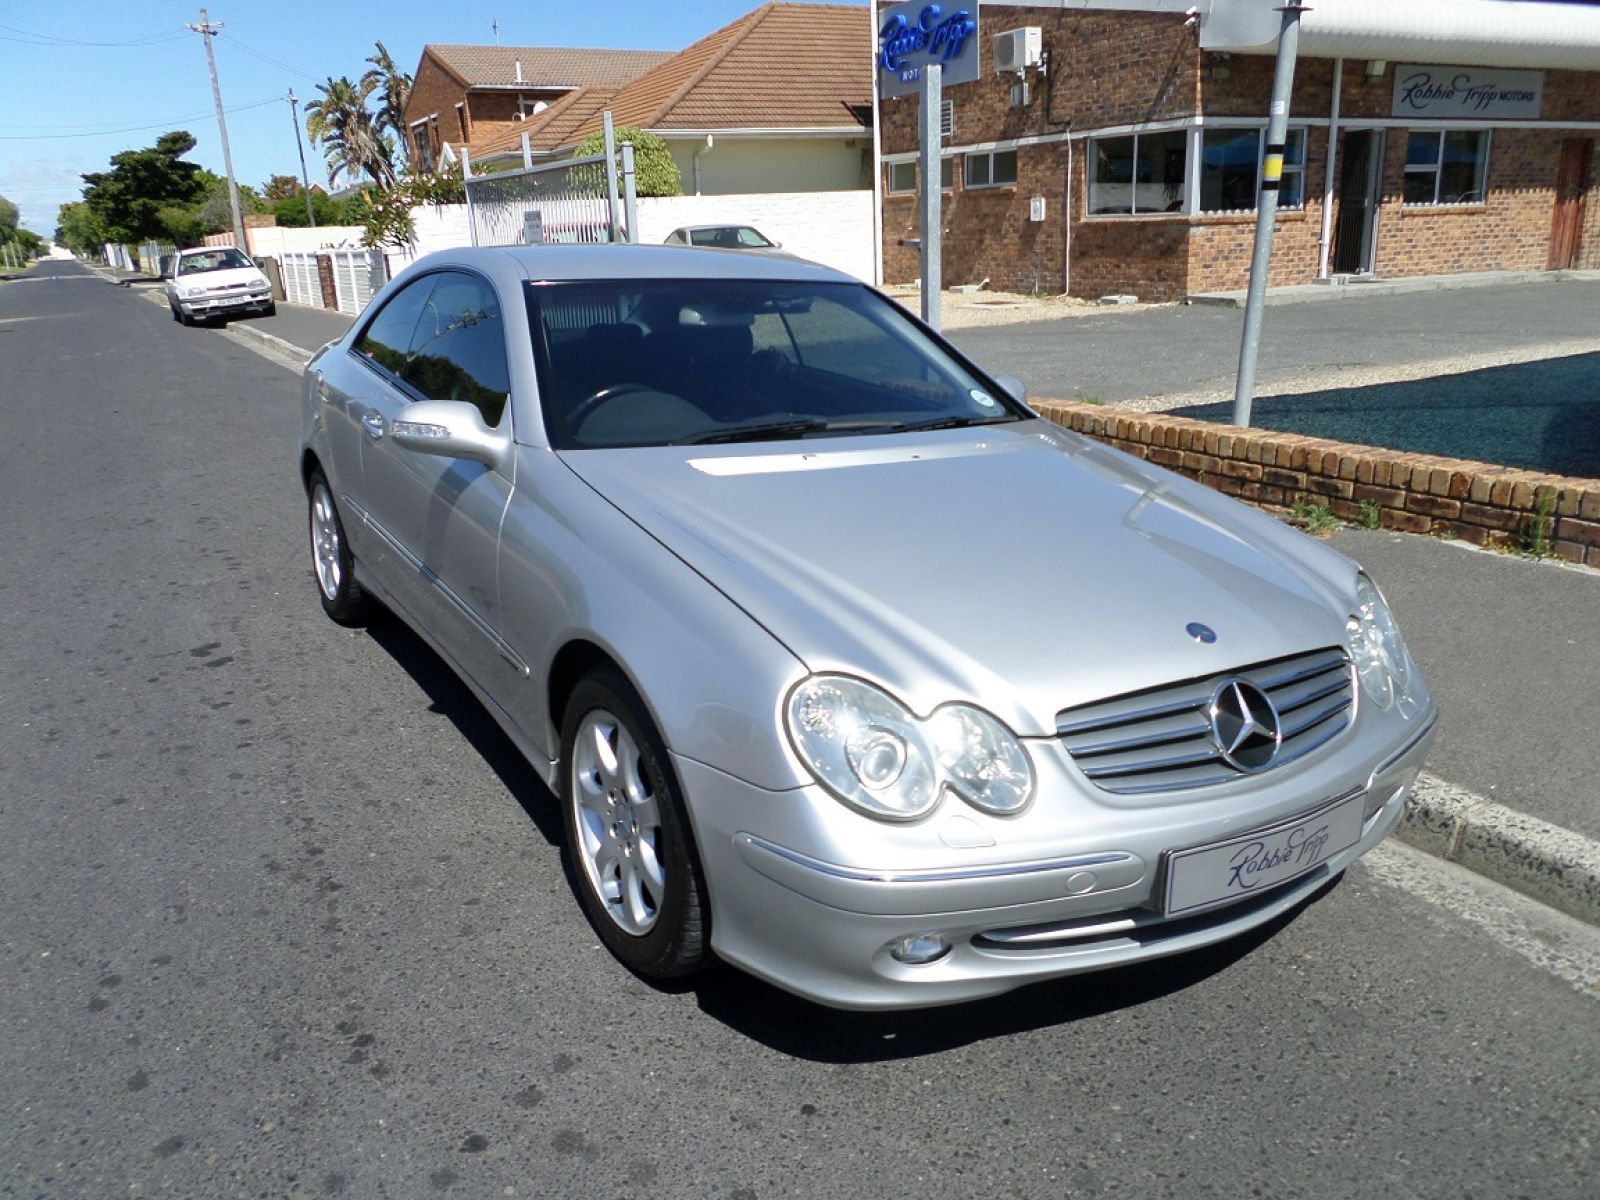 Clk clk320 coupe a t specifications for Mercedes benz oil change interval